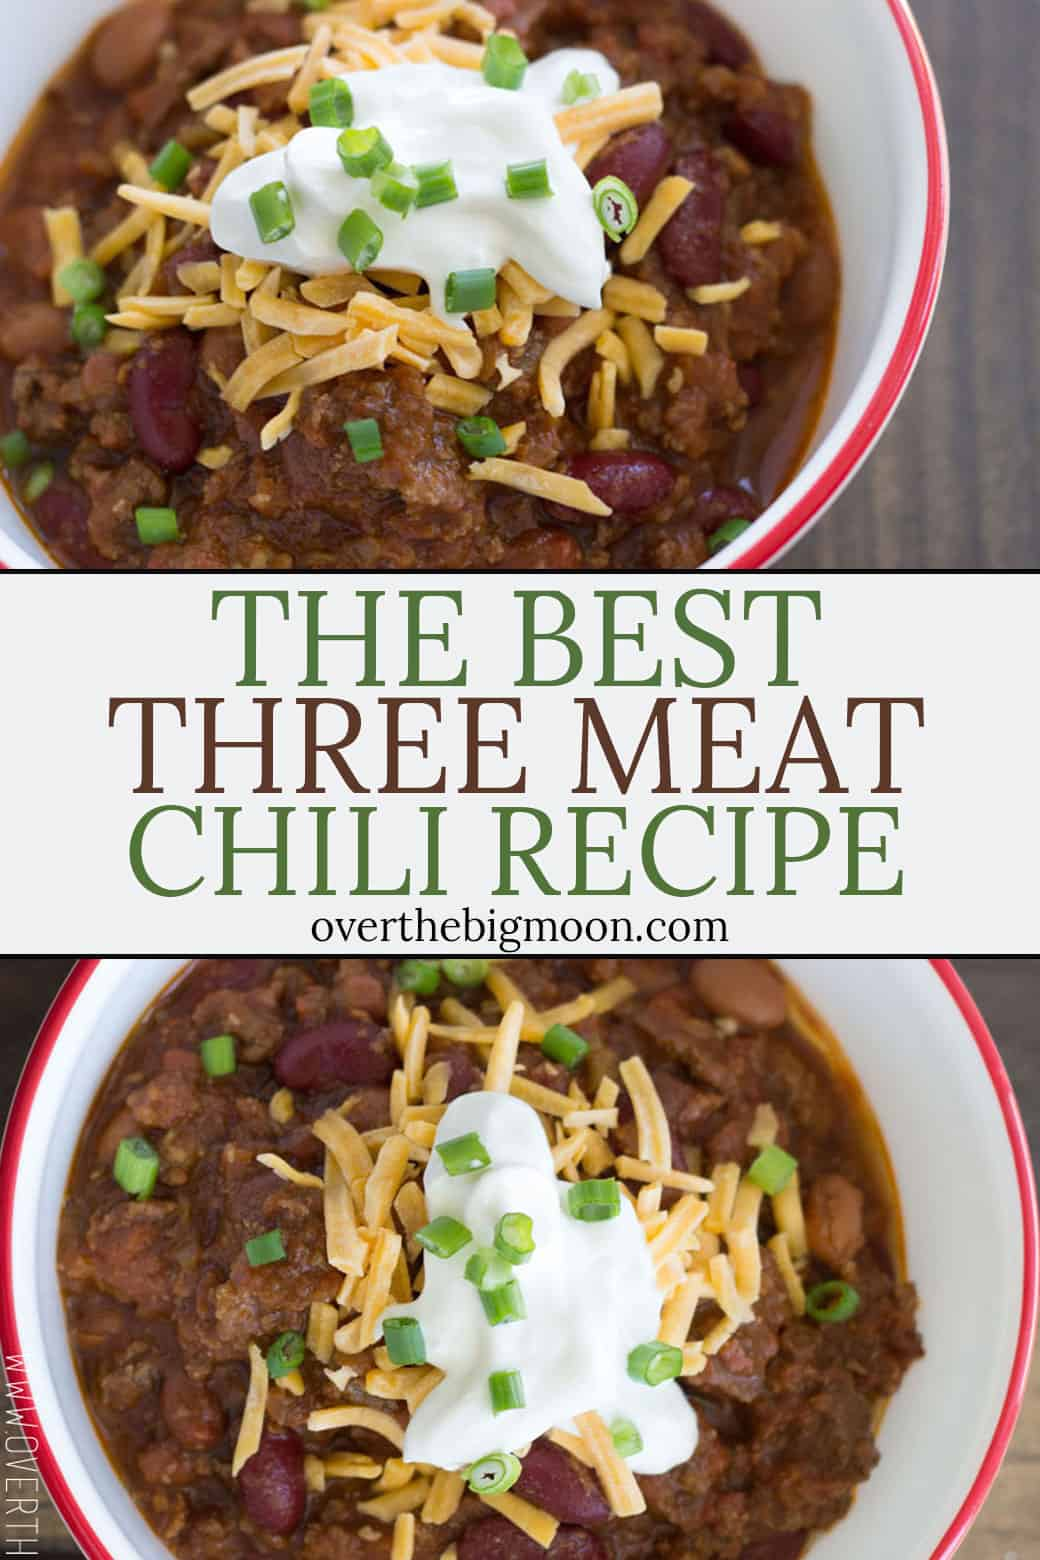 The best THREE MEAT CHILI RECIPE! This will leave everyone's belly's happy! From overthebigmoon.com!